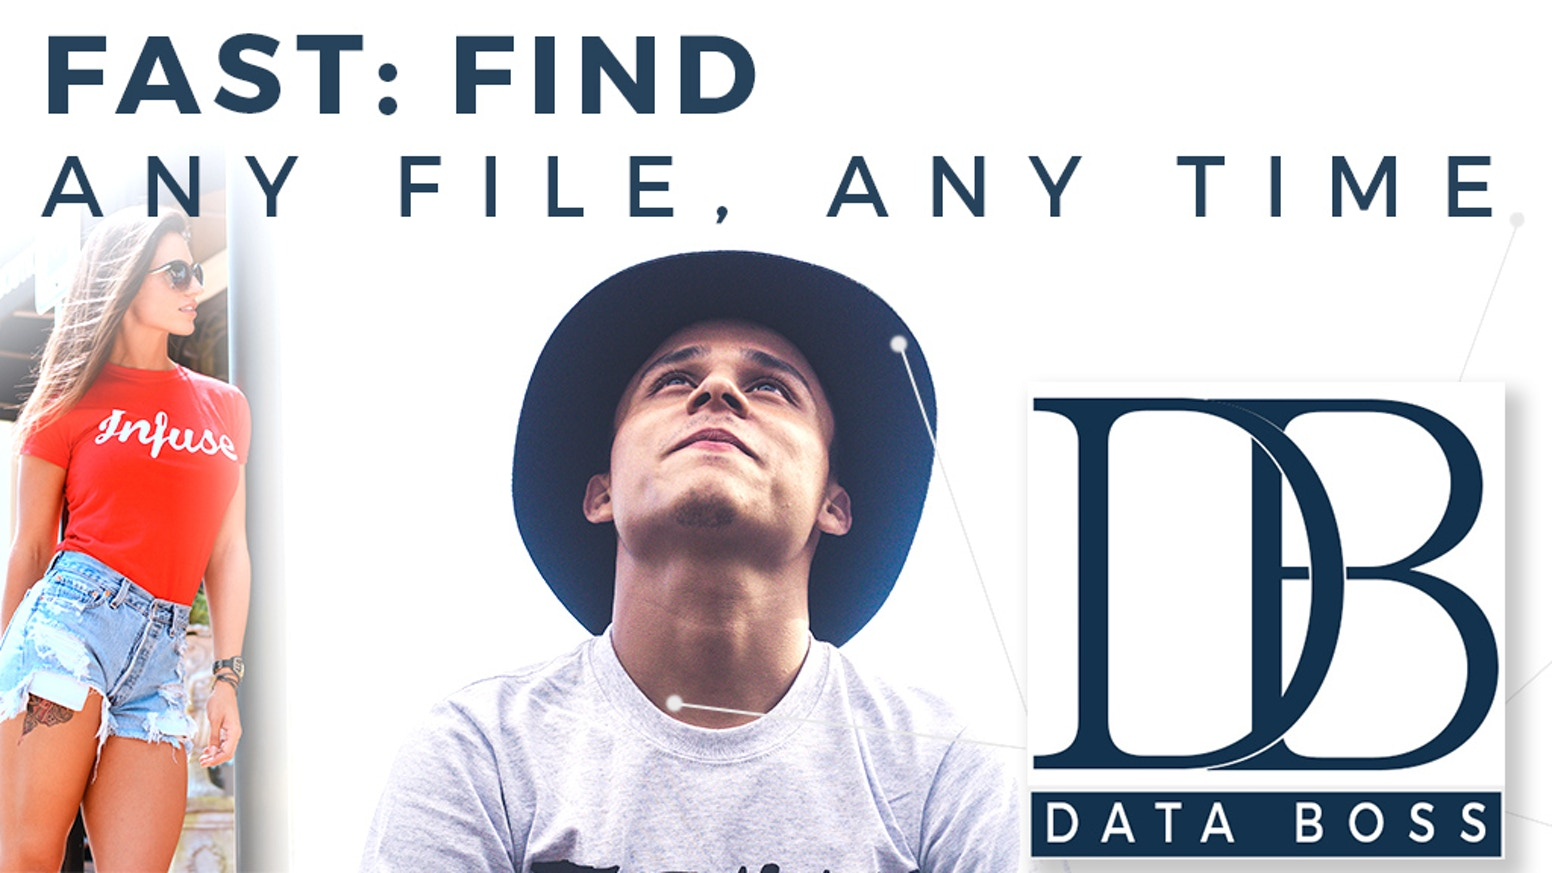 Find your data, even from years ago, instantly. Like a boss. The smartest way to handle your Photo, Video, any files. Saves time!